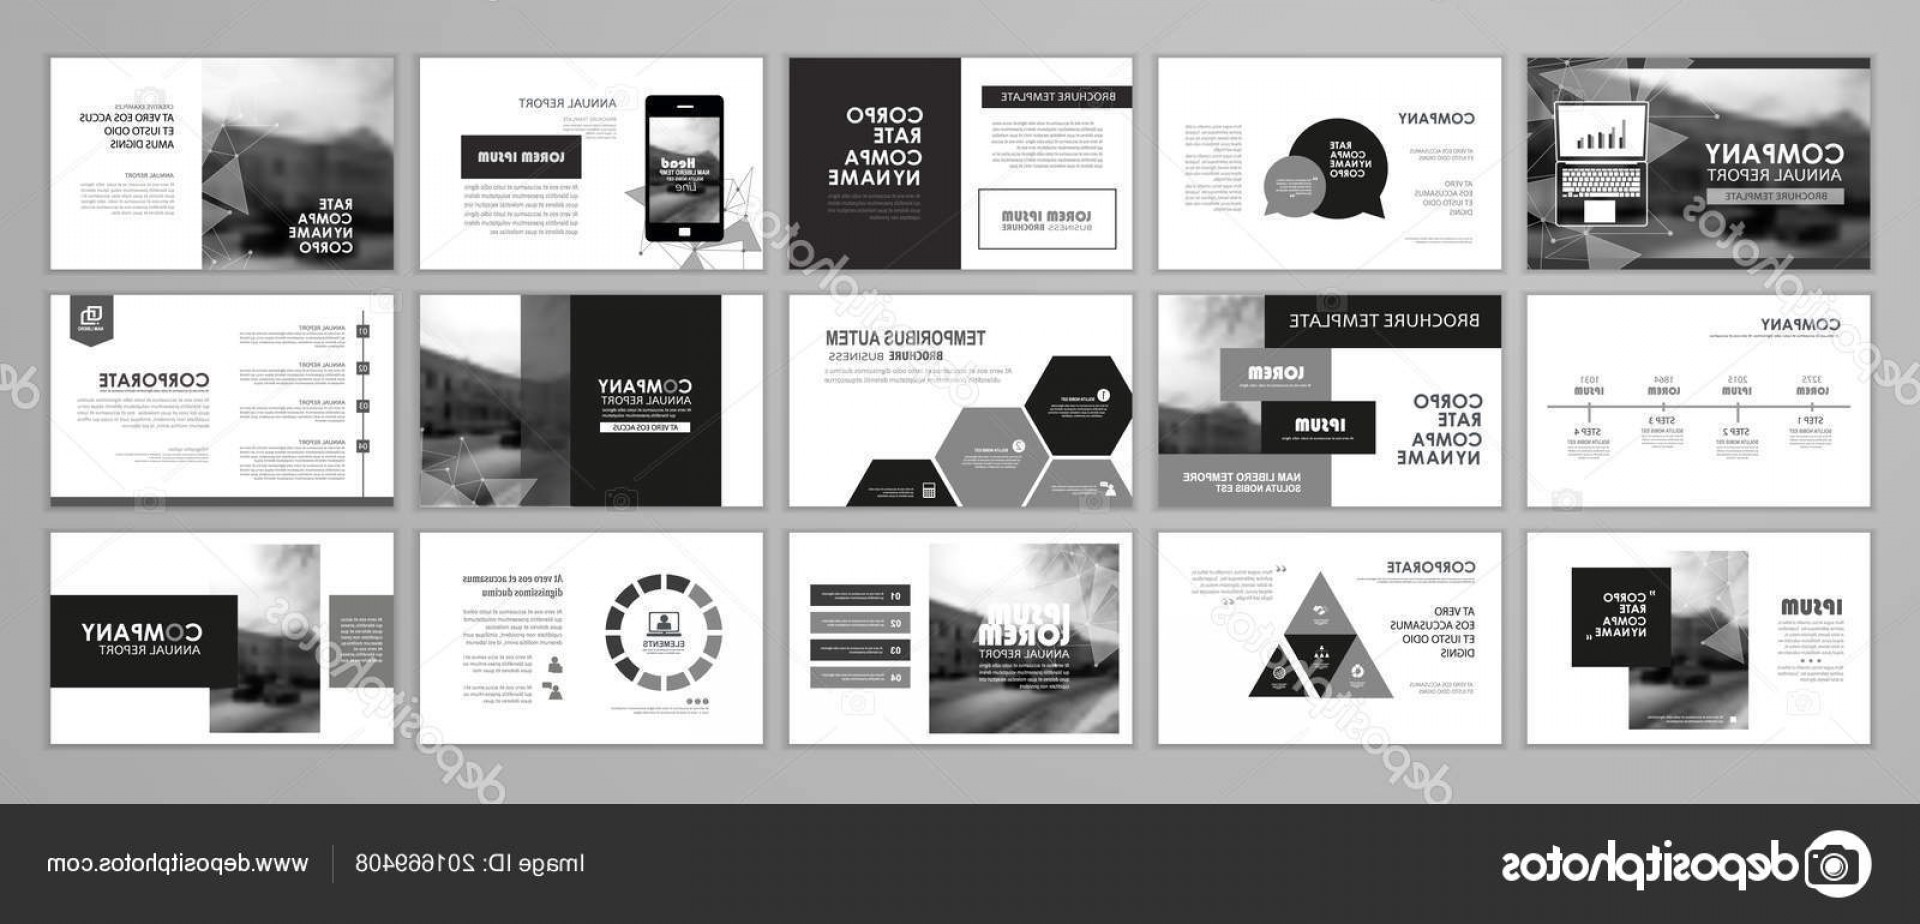 Black And White Flyer Vectors: Stock Illustration Black White Abstract Presentation Slide